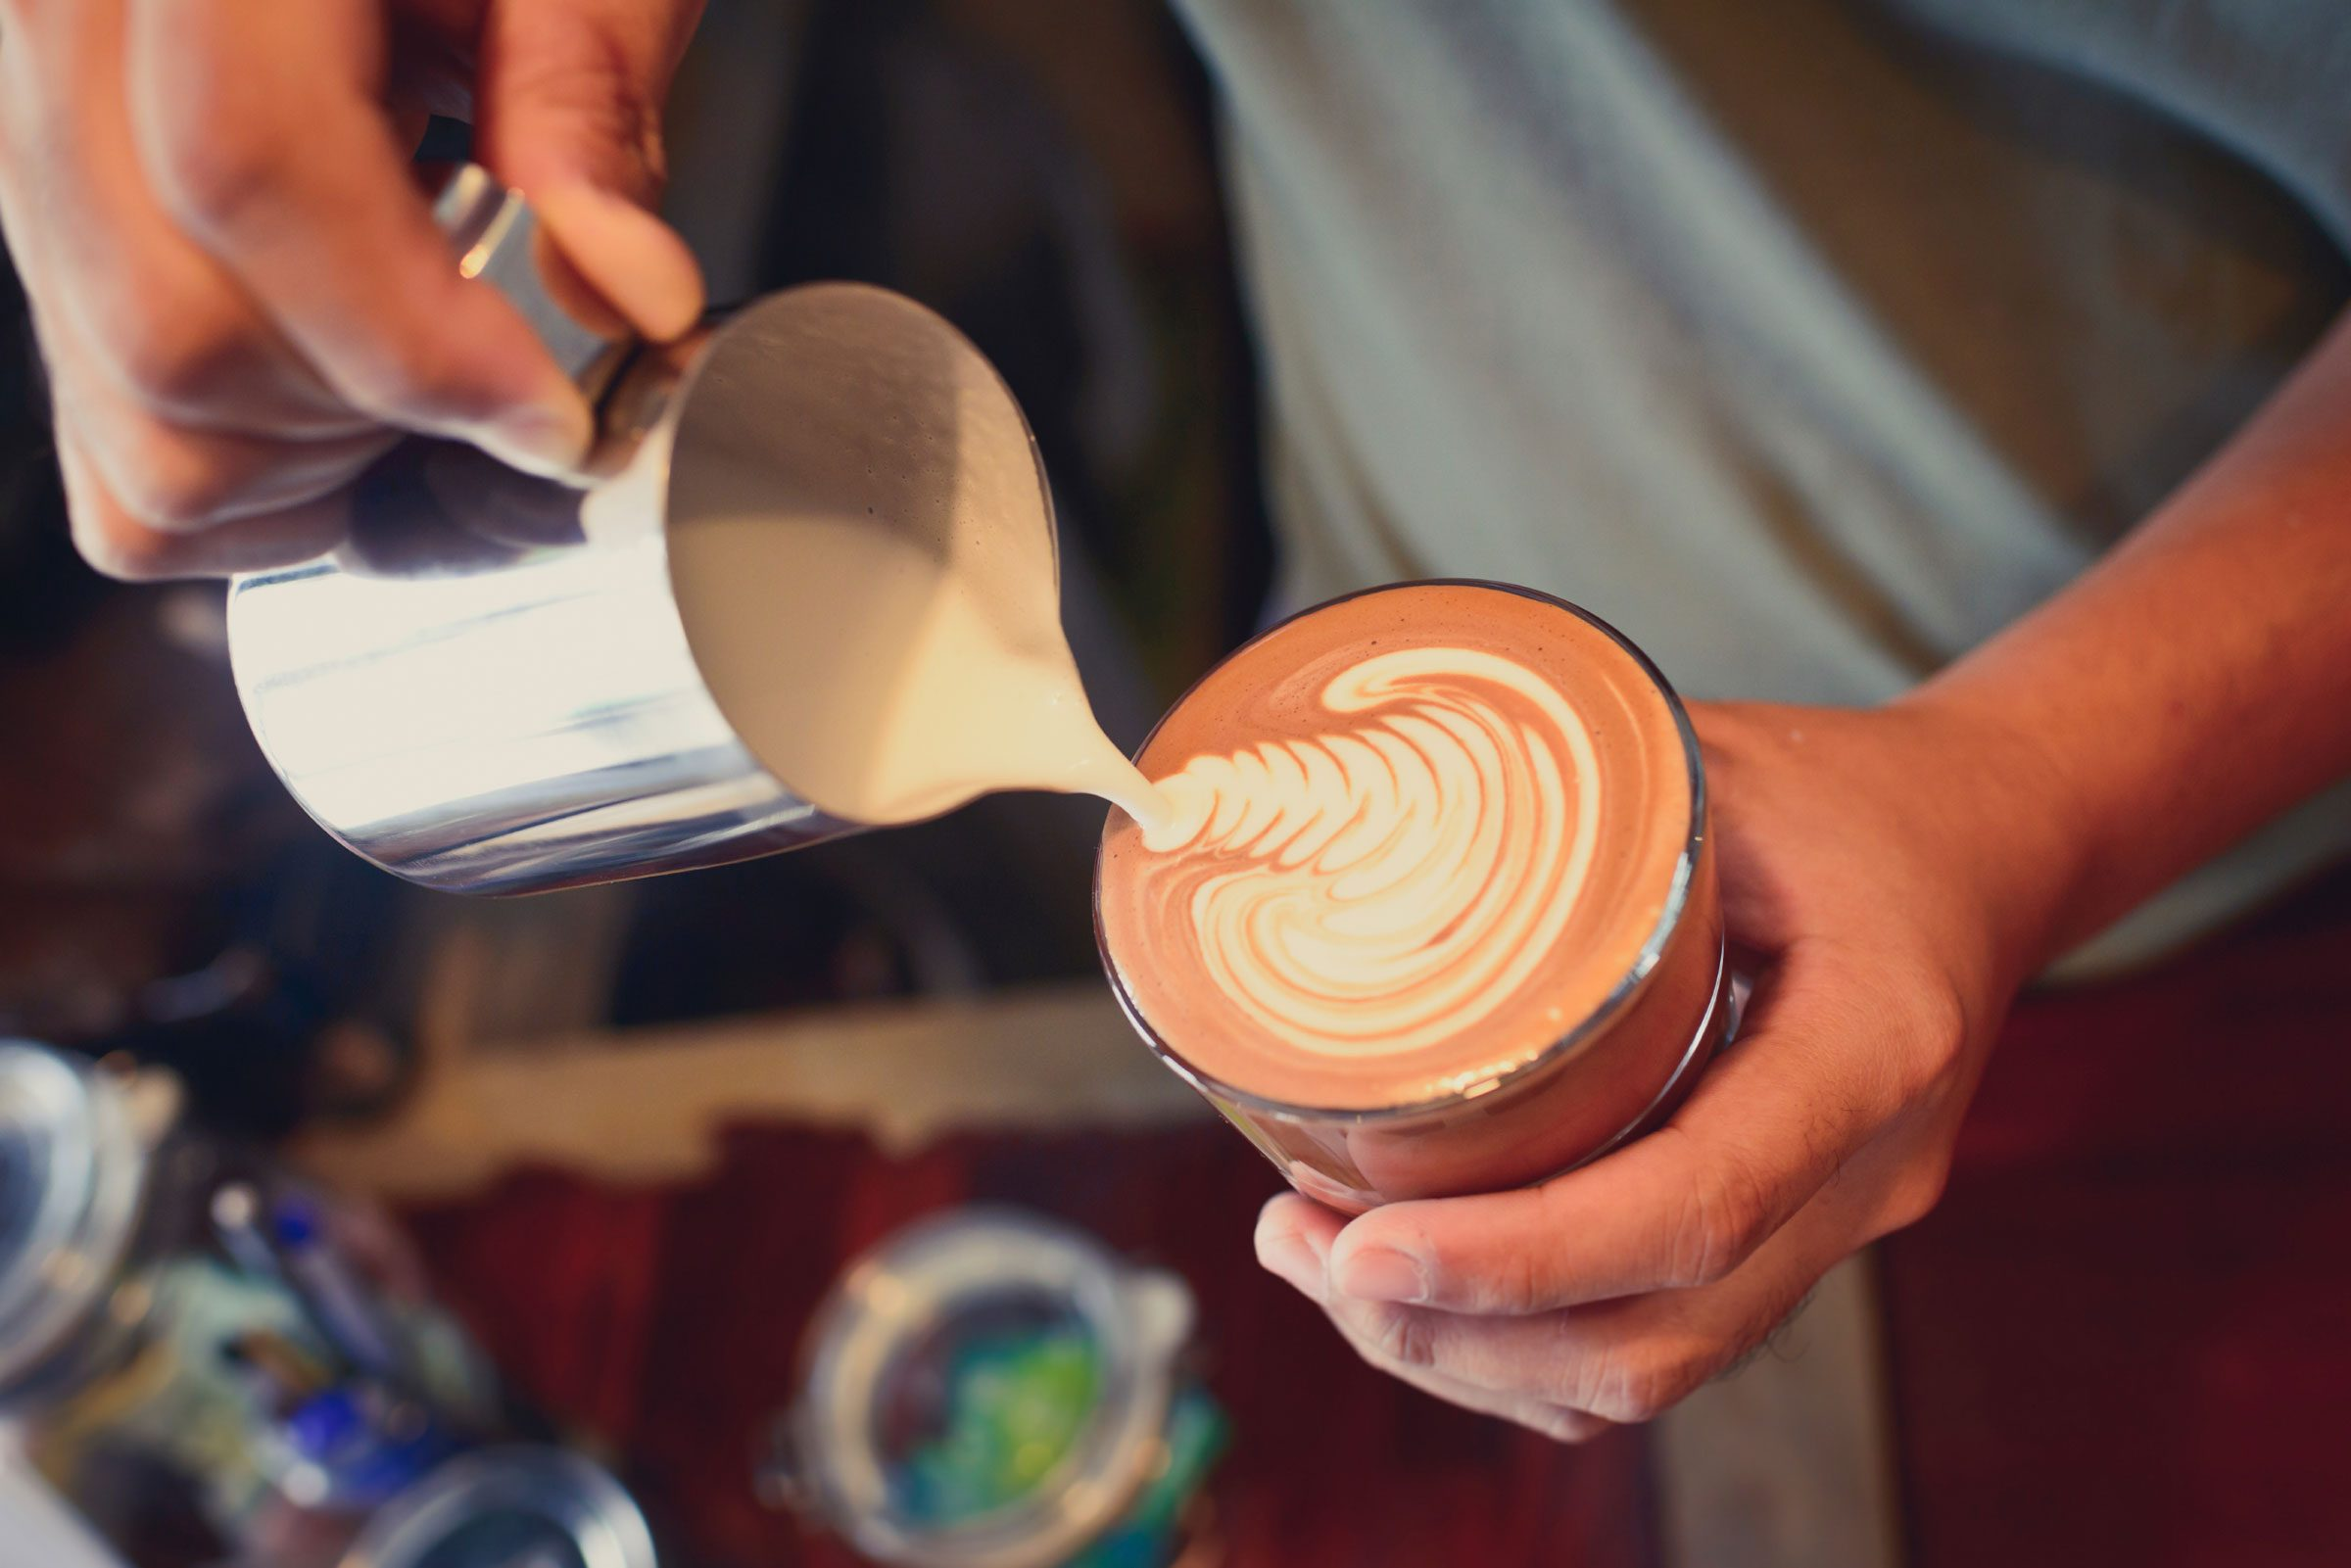 6. Latte art isn't merely decorative